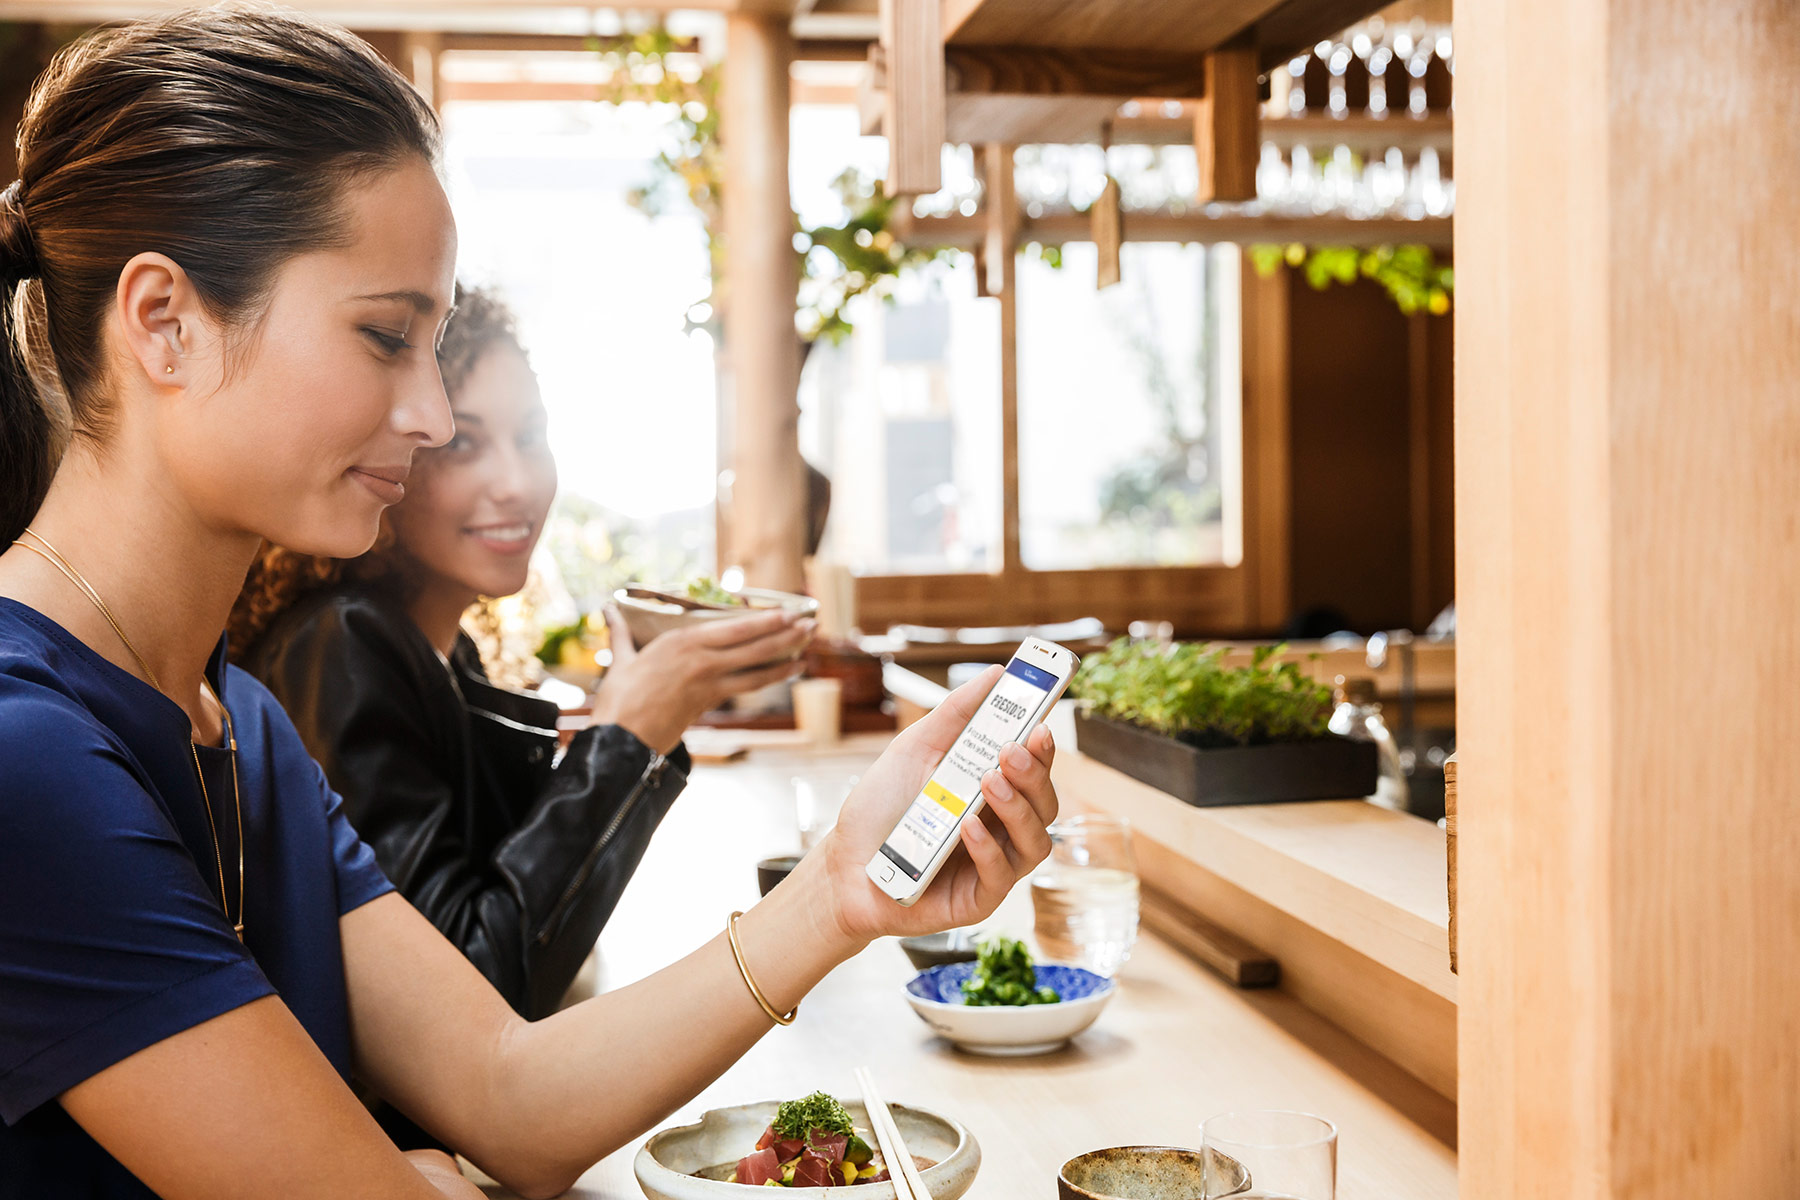 Woman seated at the bar with a friend at a restaurant smiling down at her phone.